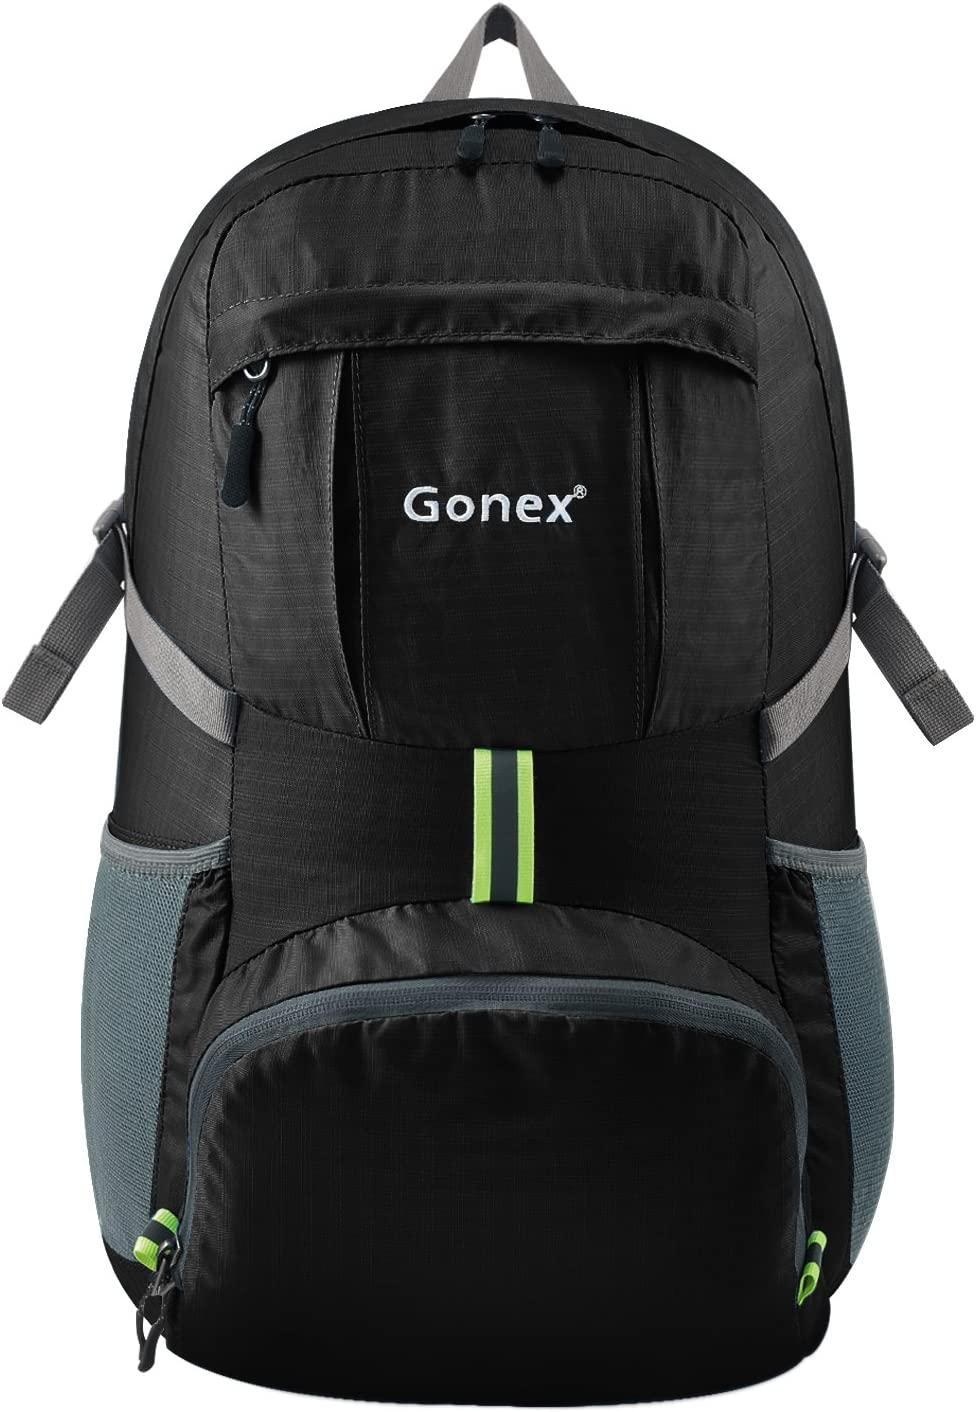 Lightweight Daypack For Travel review.